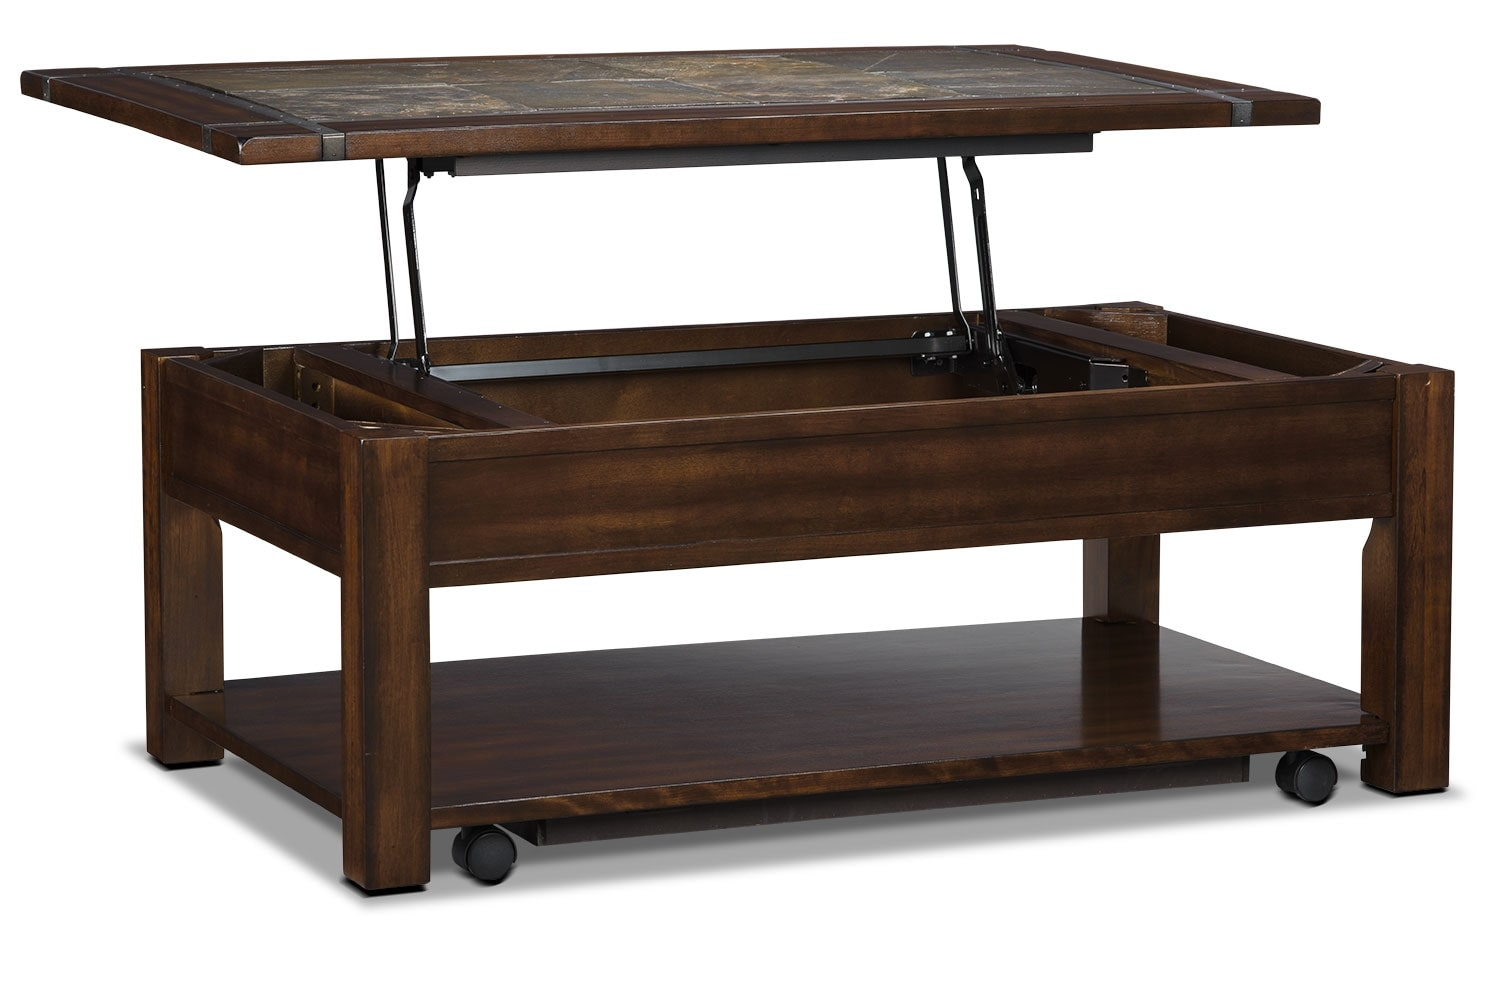 Roanoke Coffee Table with Lift-Top and Casters